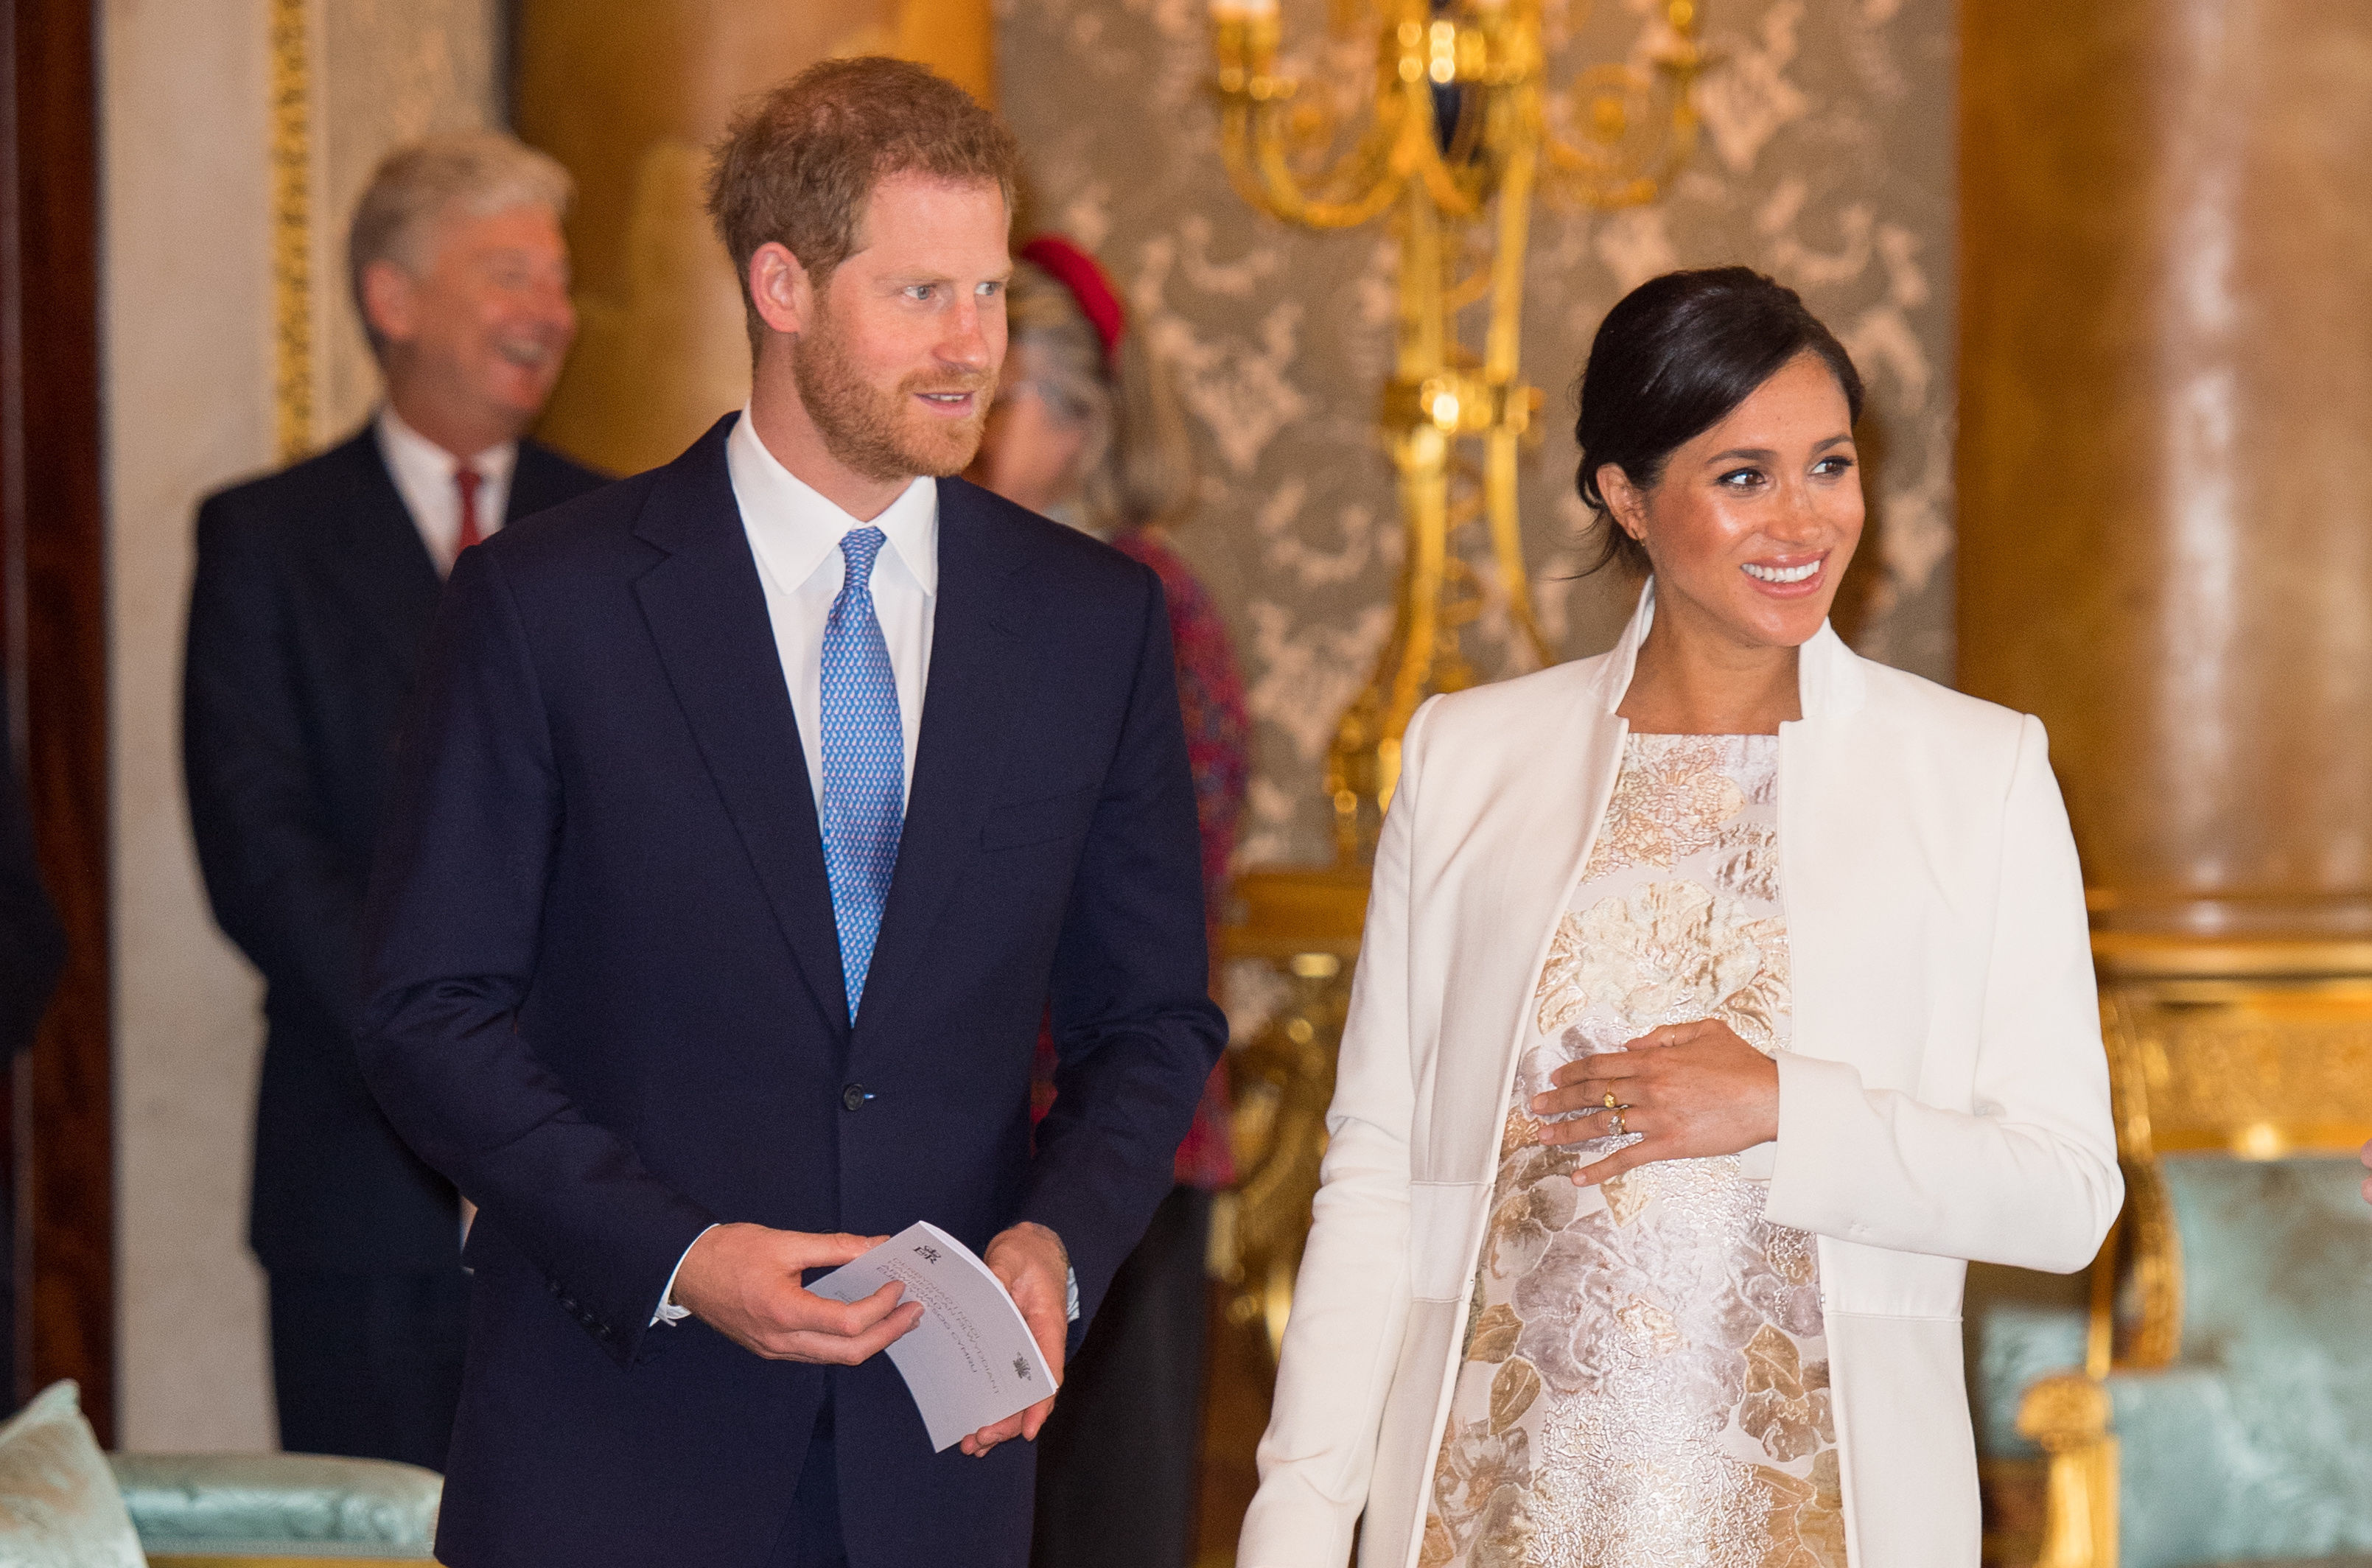 meghan markle and prince harry s royal baby net worth money https money com meghan markle prince harry royal baby rich net worth